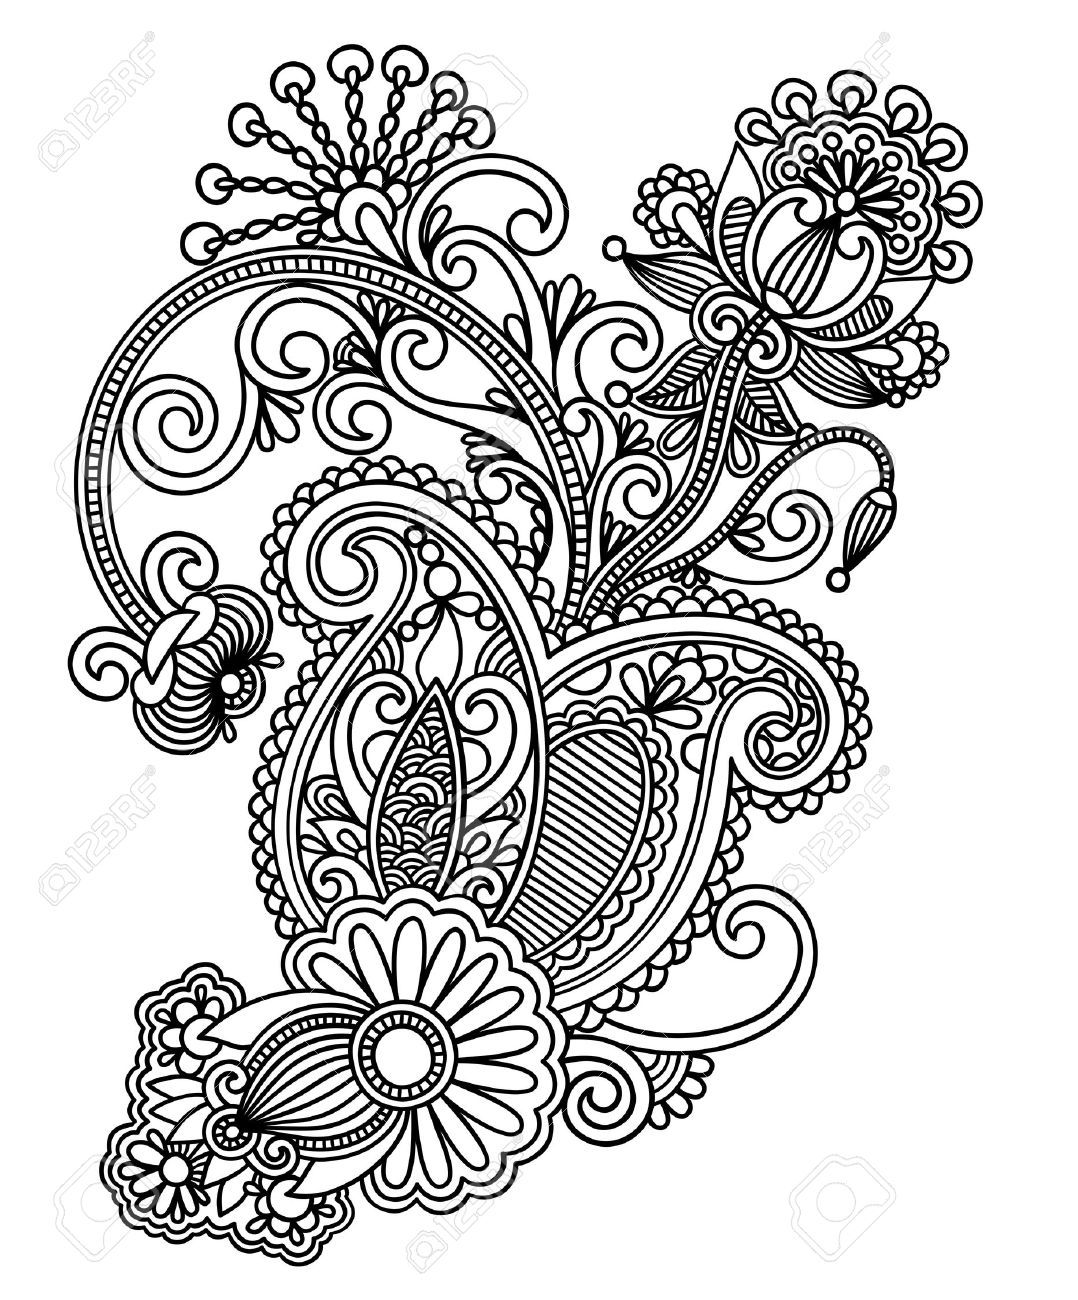 Line Design Ideas : Aztec floral design google search tattoo ideas